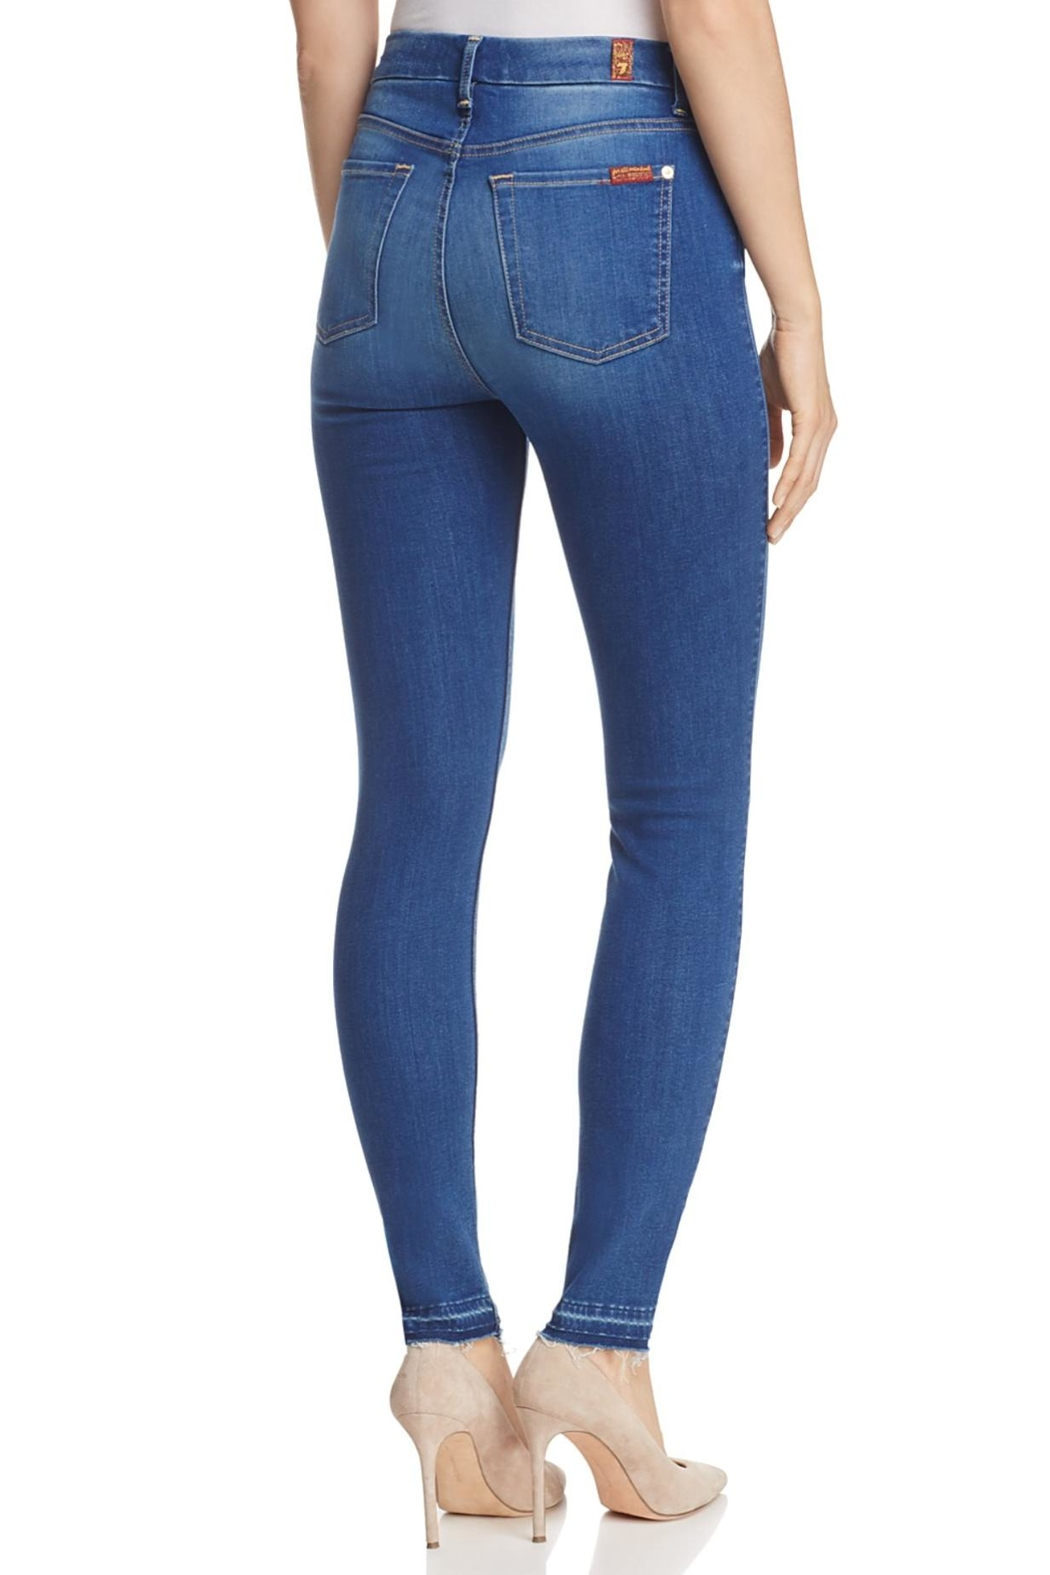 7 For all Mankind B(air) High-Rise Skinny - Front Full Image